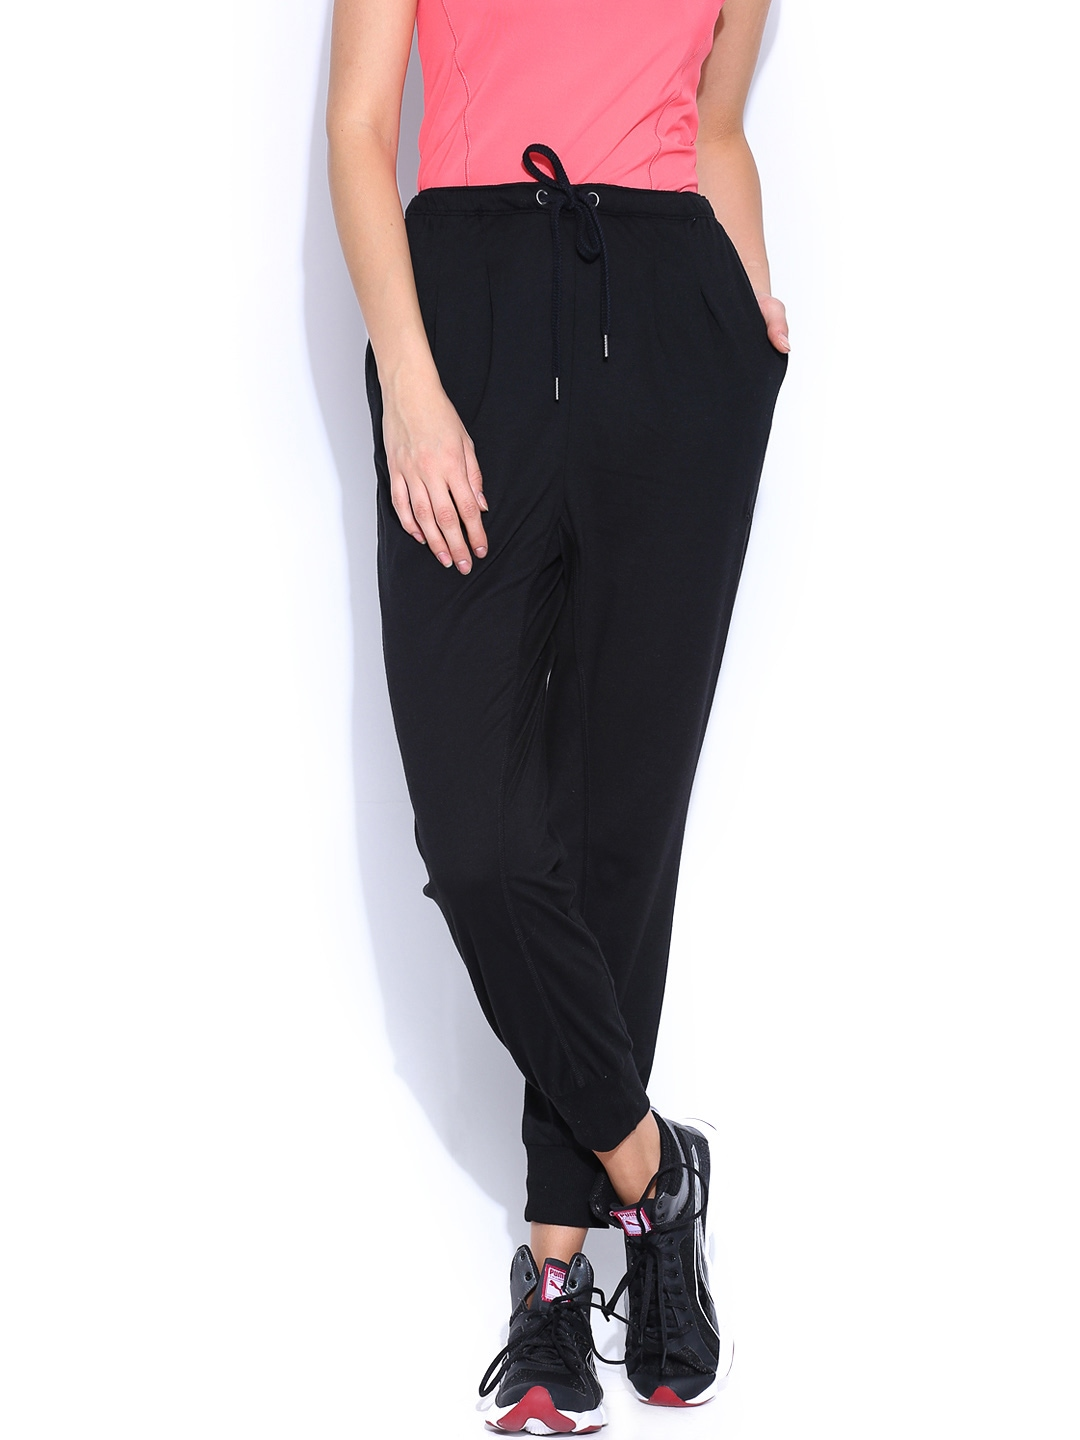 Cool  More Track Pants By Puma More Black Track Pants More Track Pants